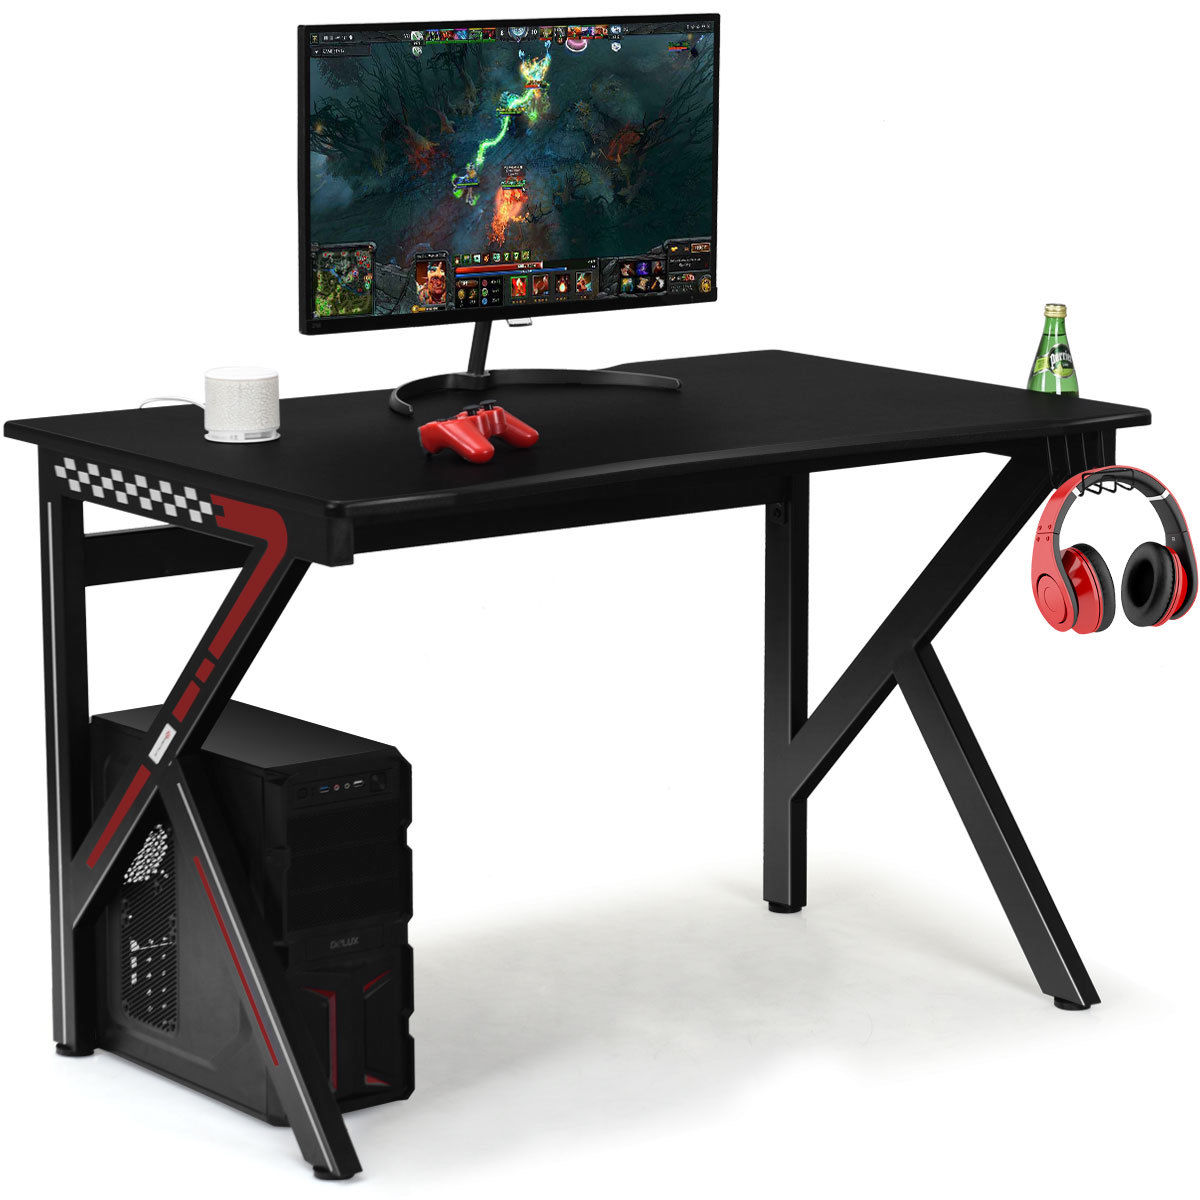 Mordern Bedroom Gaming Laptop Desk Gamers Computer Table E-Sports K-Shaped With Cup Holder Hook Home Office Furniture HW60238